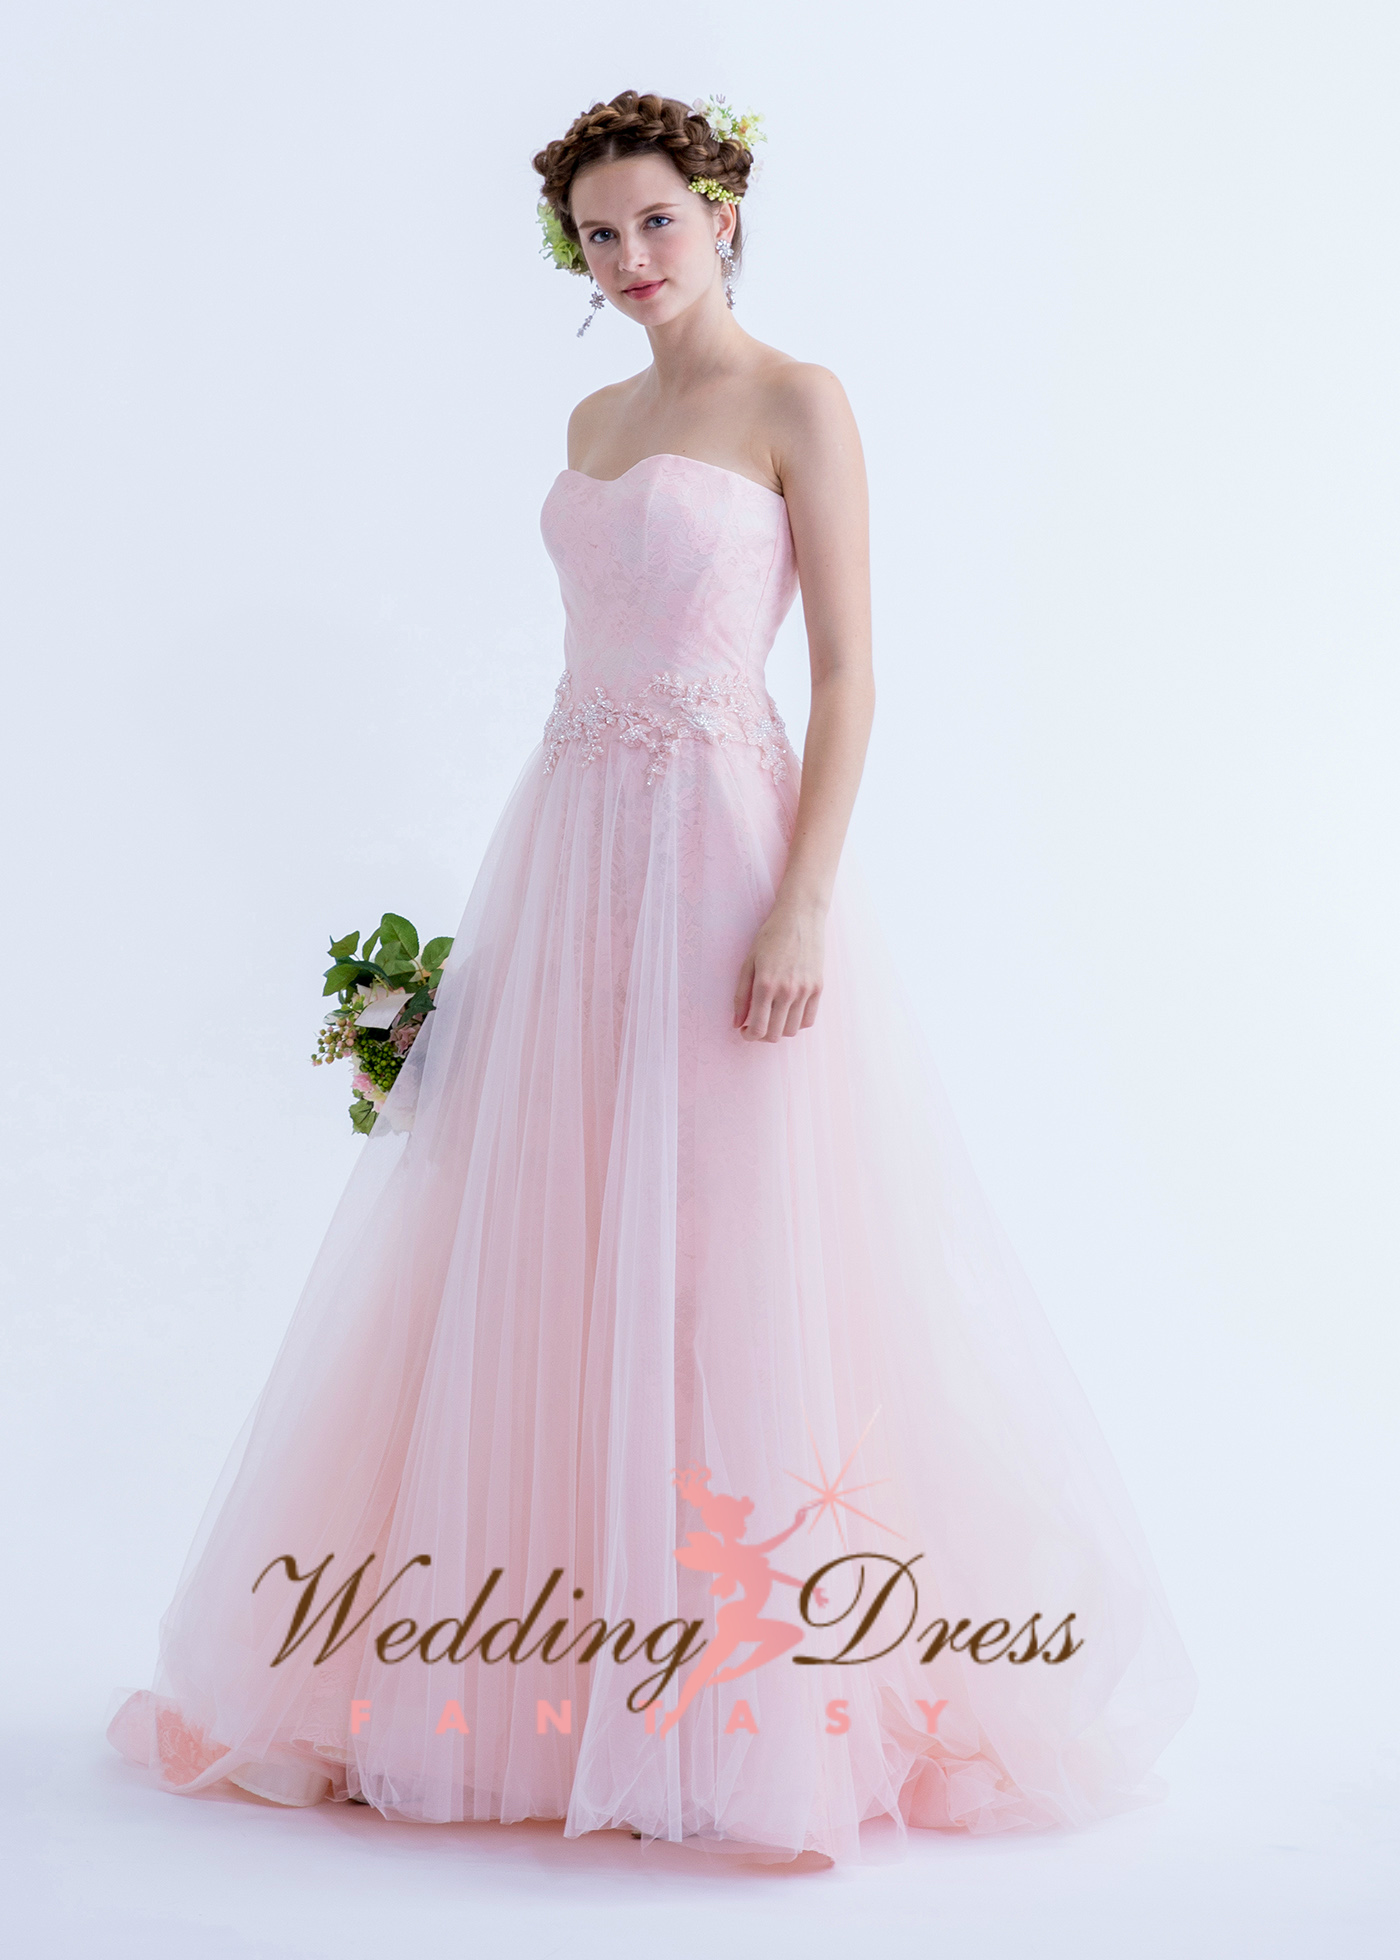 lightpinkweddingdressl.jpg